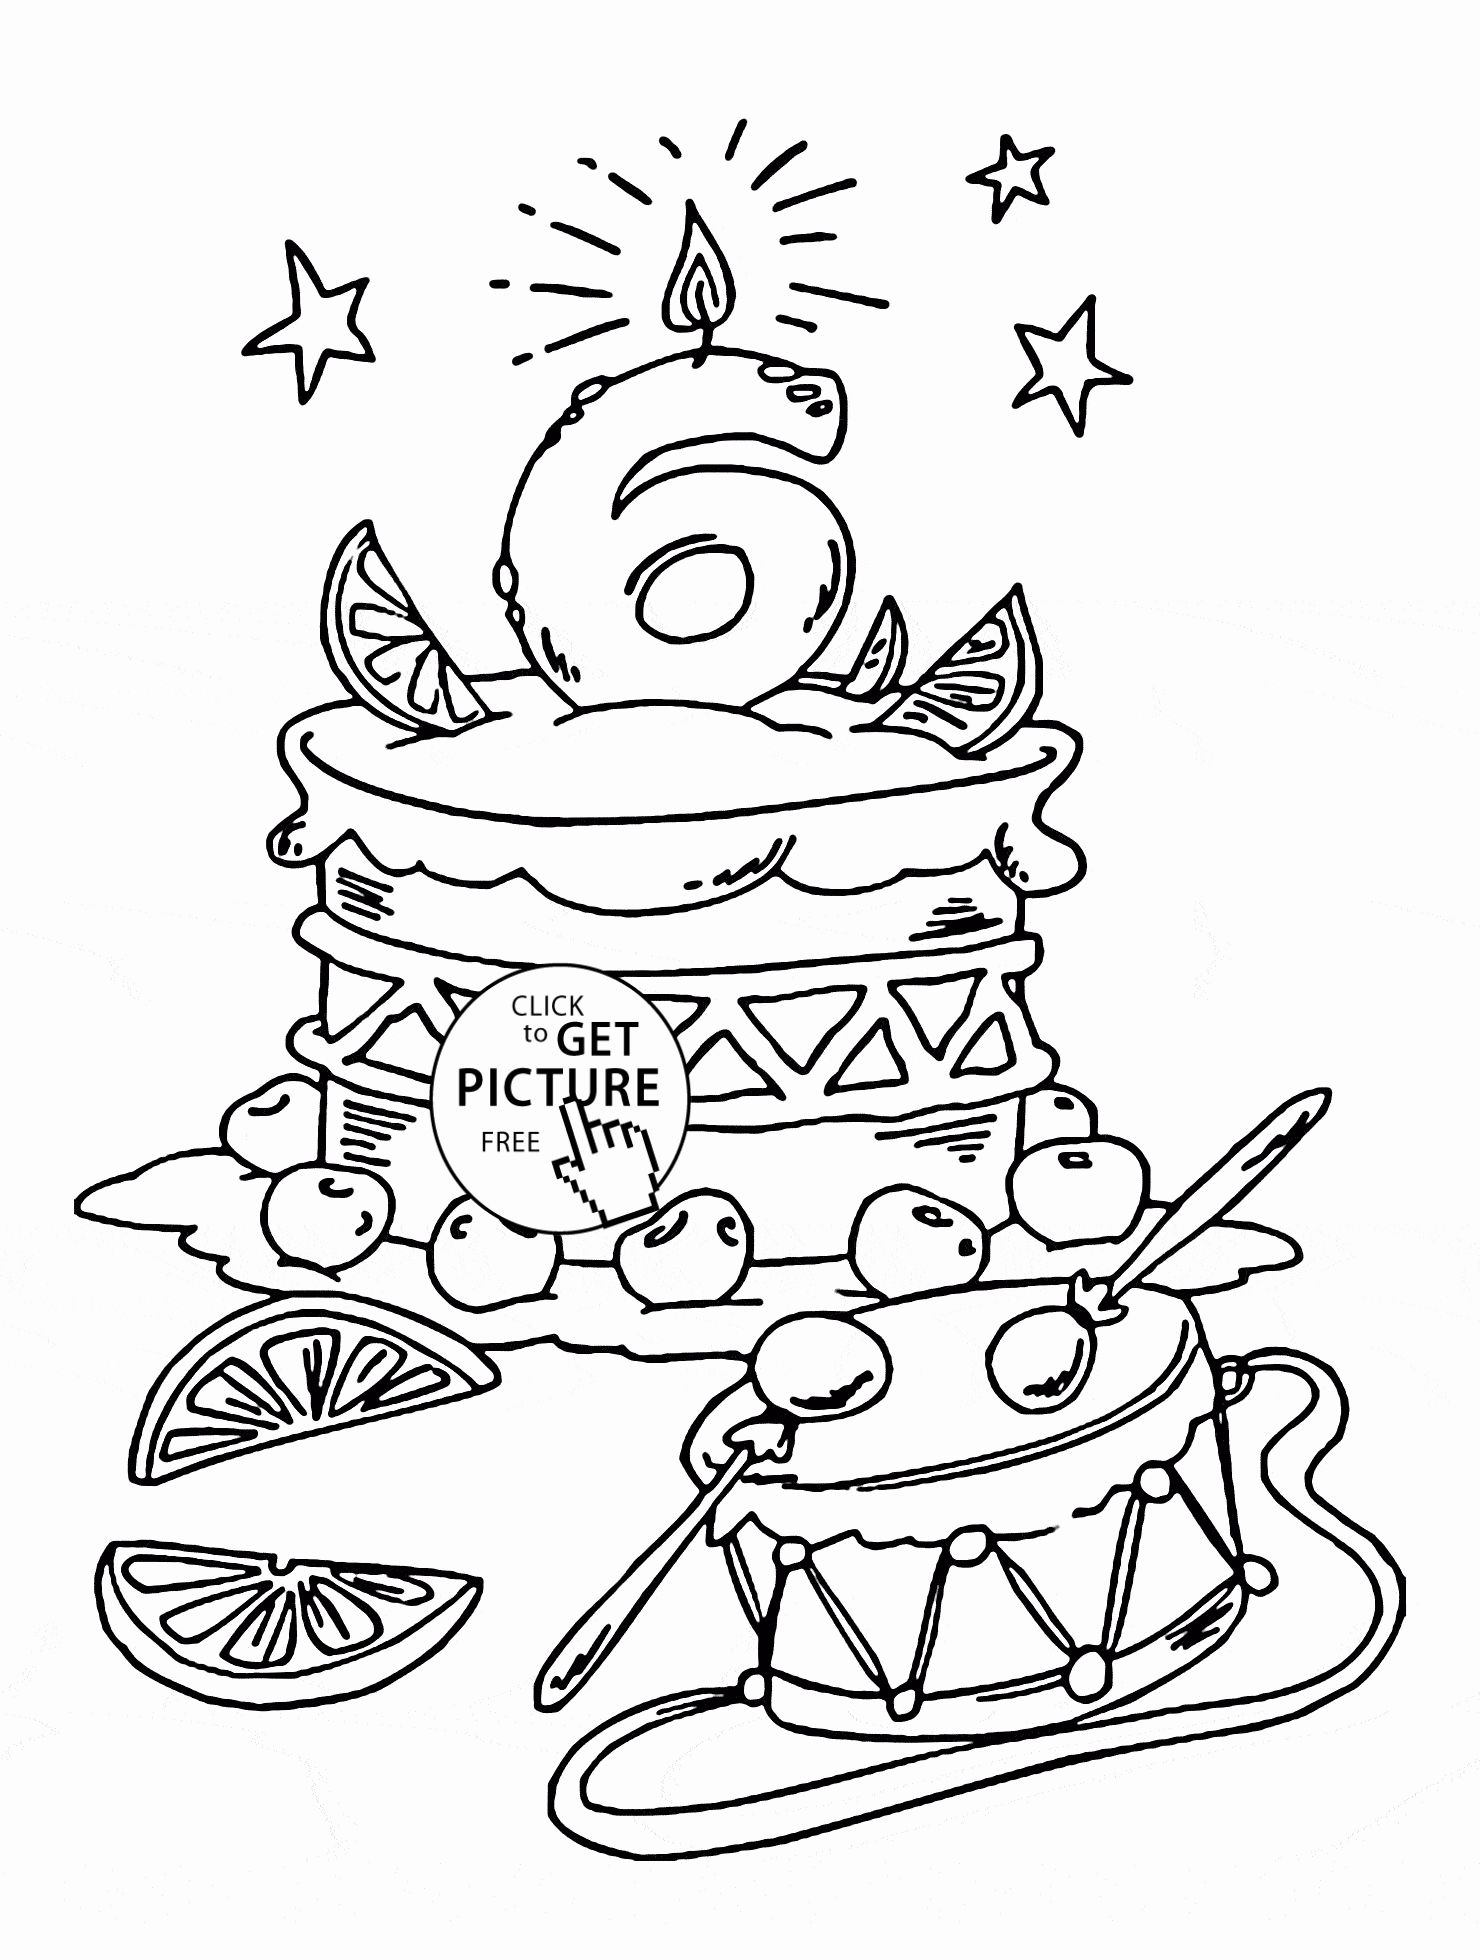 Happy Birthday Coloring Books Best Of Happy 6th Birthday Coloring Page For Kids Ho Happy Birthday Coloring Pages Holiday Coloring Book Happy Birthday Printable